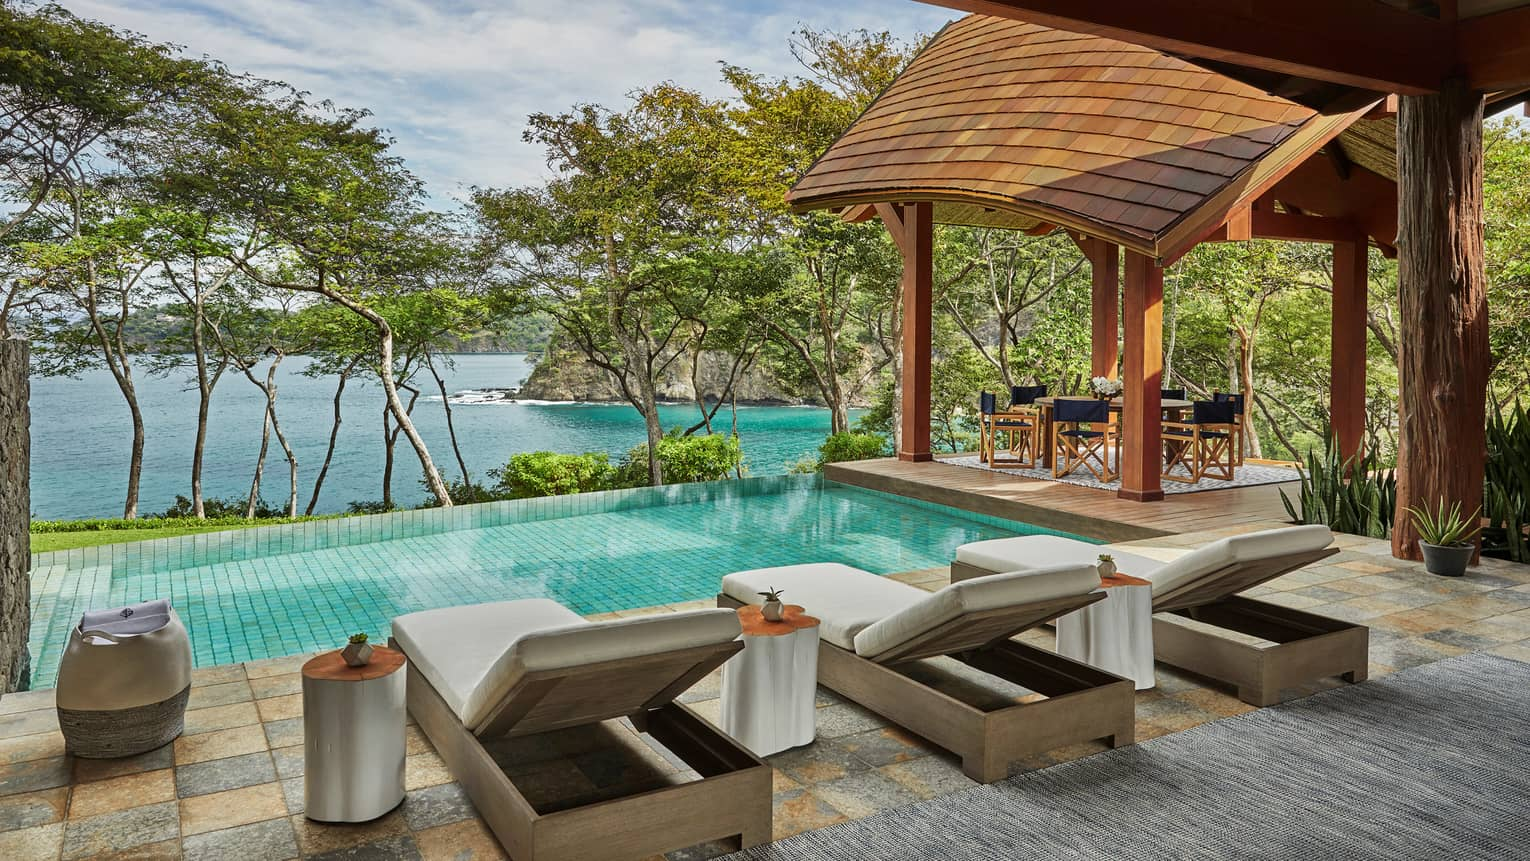 Miramar Suite patio tile patio, three long lounge chairs in front of plunge pool, row of trees, overlooking ocean